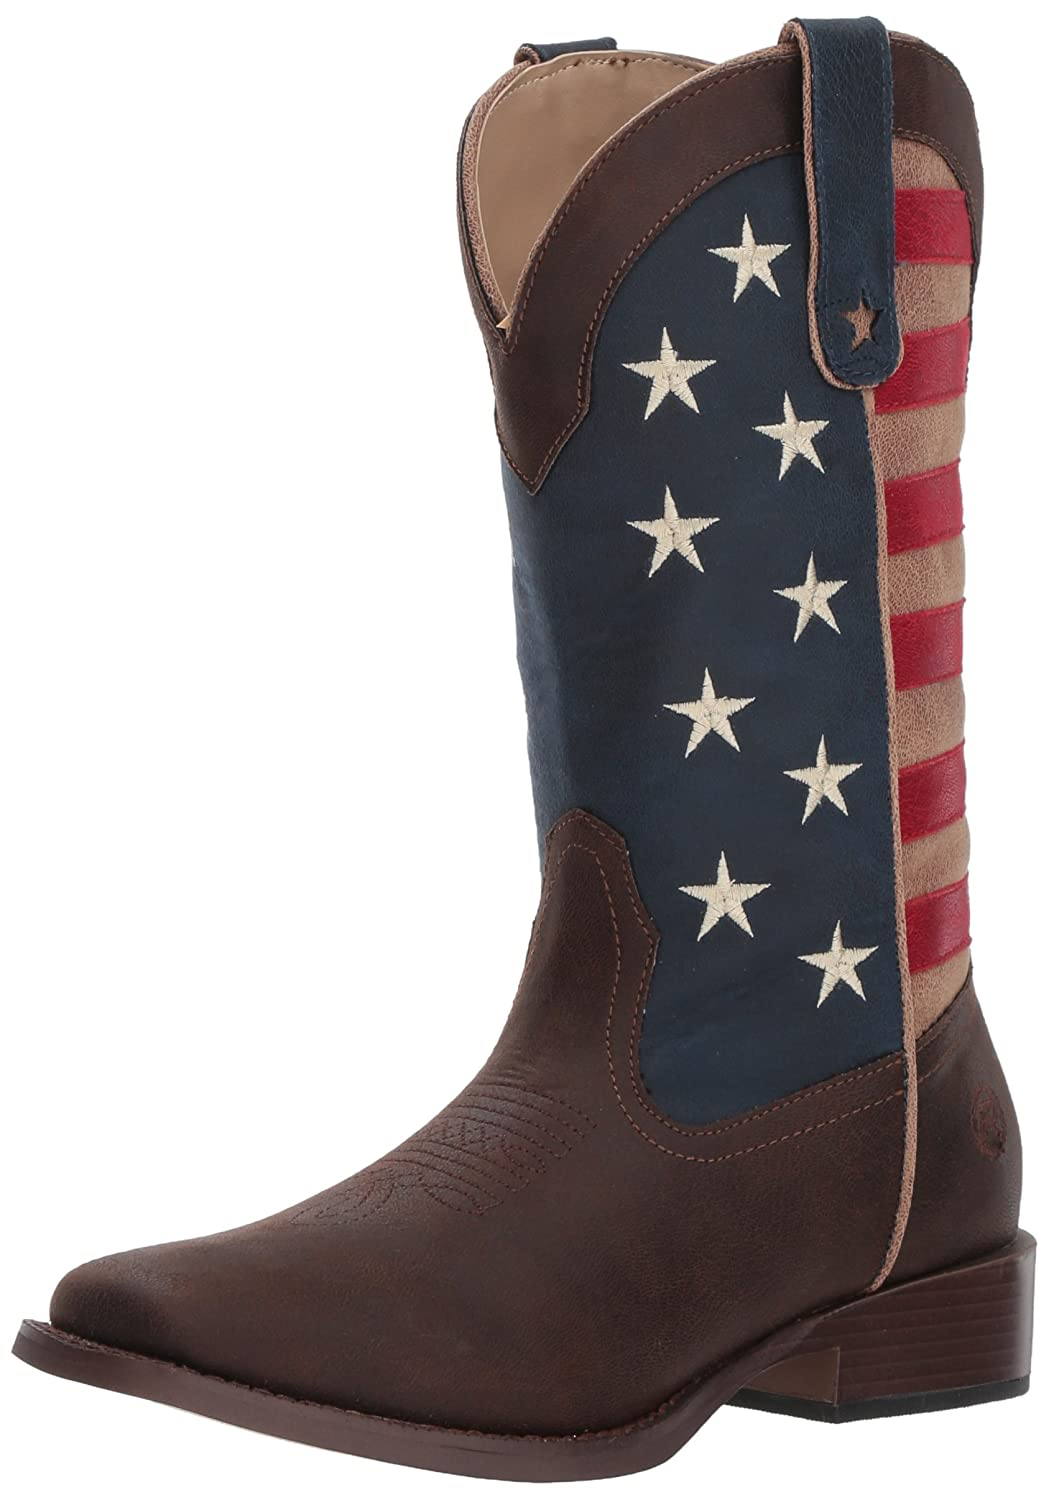 Roper Women's American Patriot Western Boot B00BPDDSQO 7.5 B(M) US|Brown